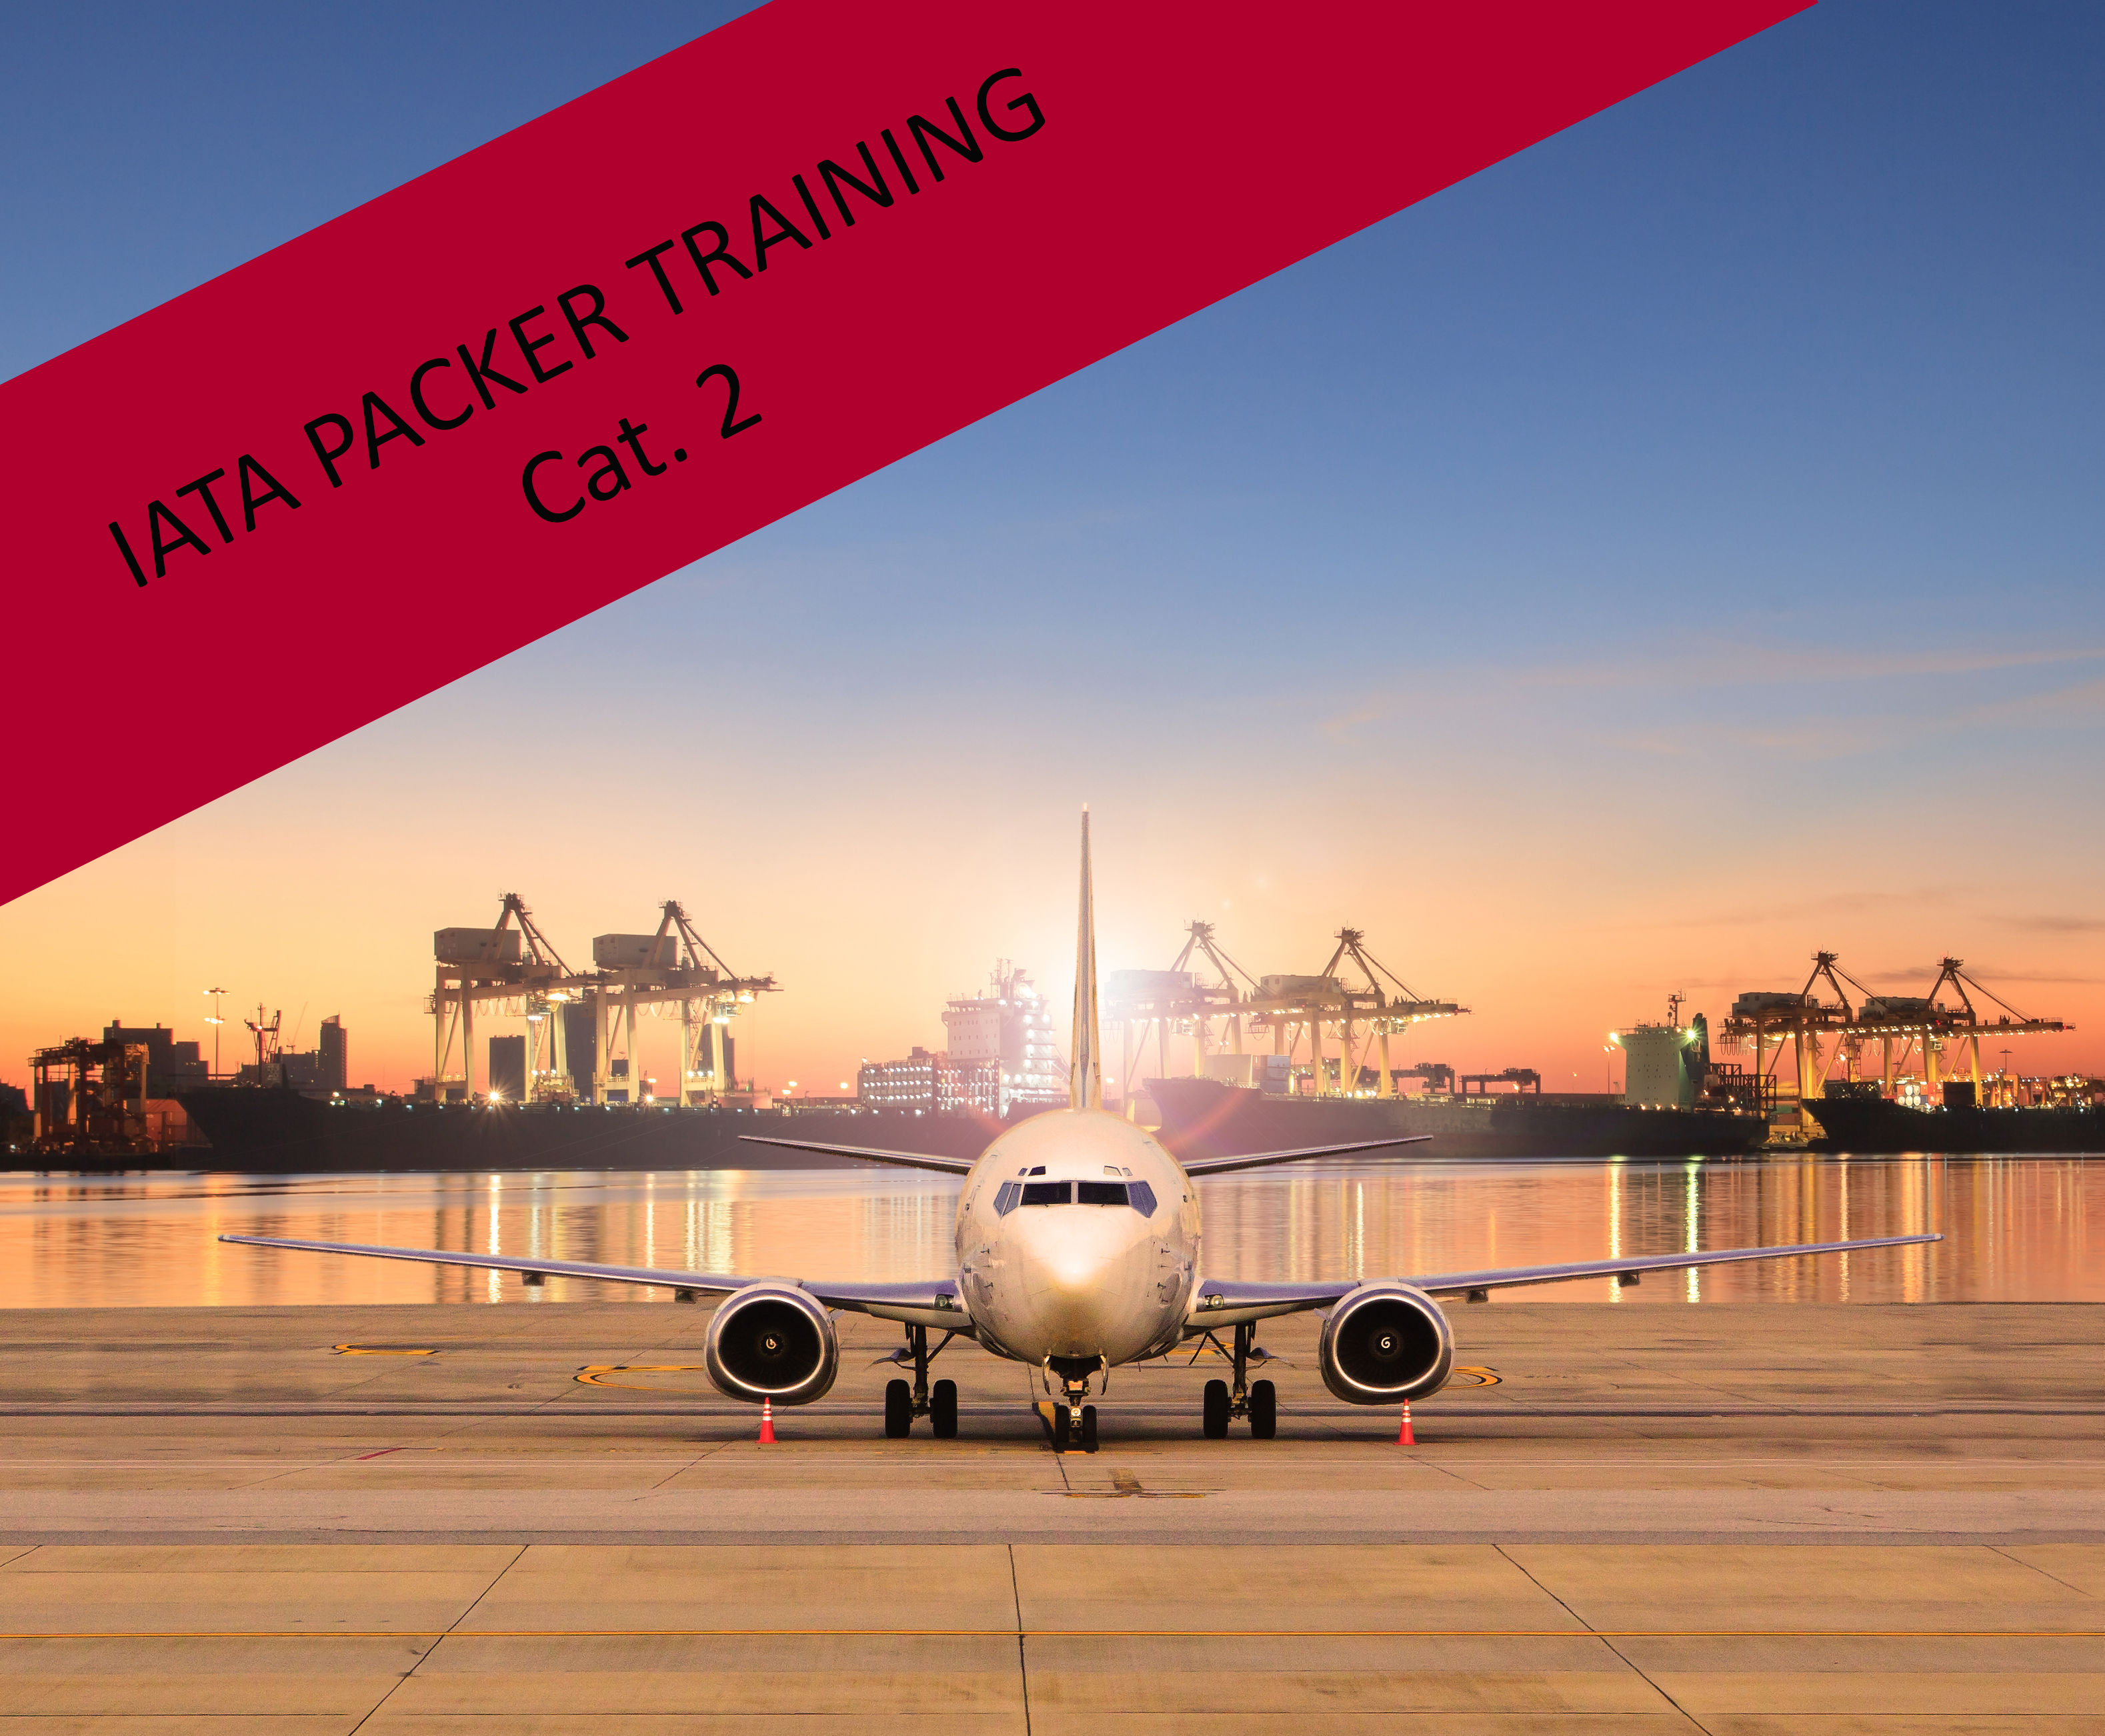 IATA Packer Training, Cat. 2